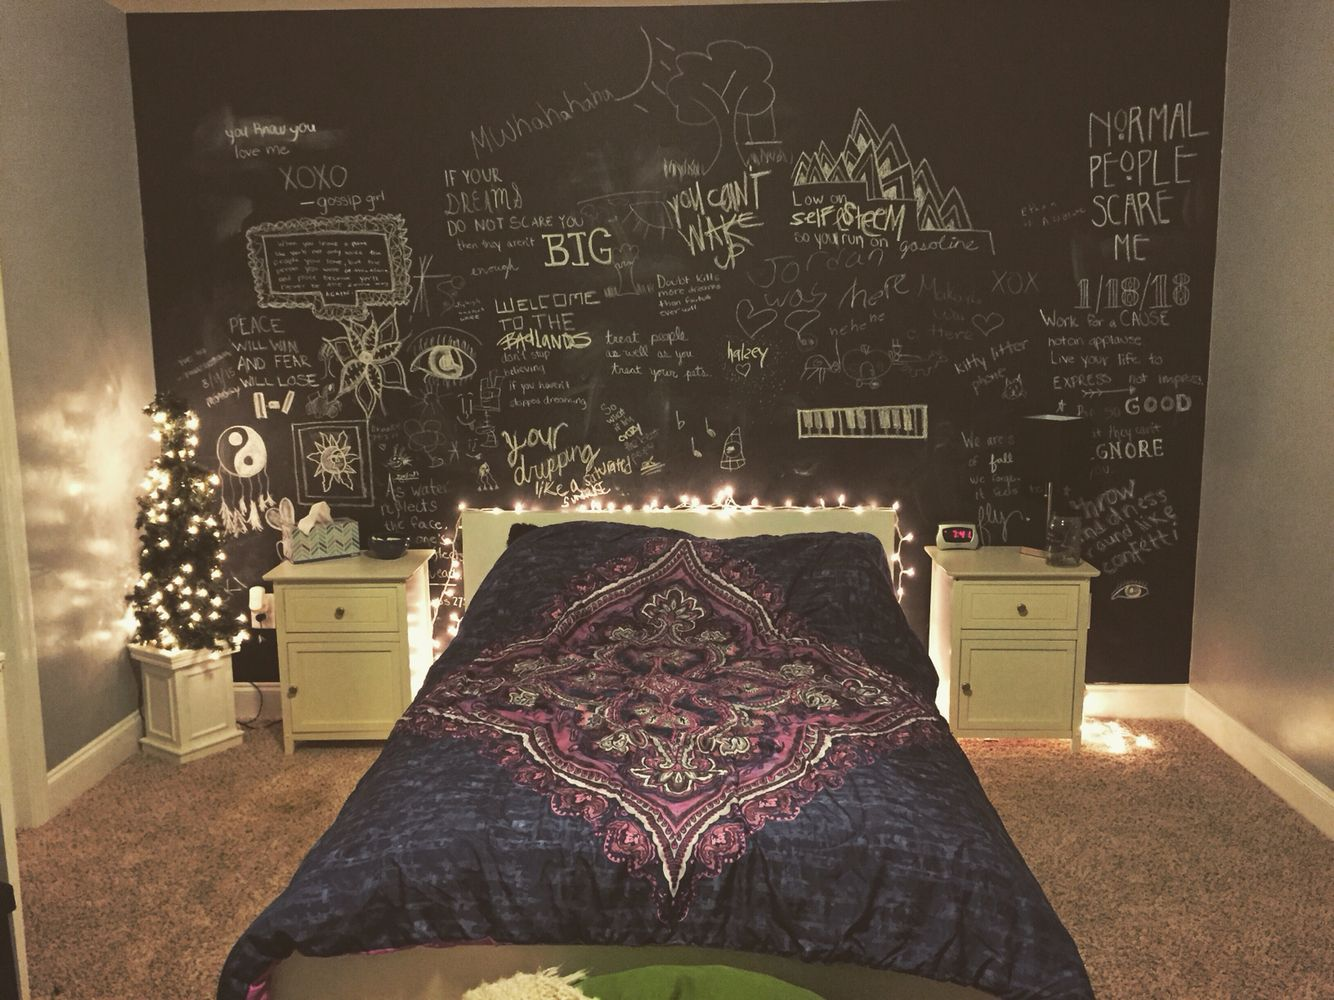 6e20fa bedroom tumblr ideas - Bedroom Tumblr Chalkboard Wall Purple Blue White Ikea Fairy Lights Black Grey Teen Girl Chalkboard Pinterest Chalkboard Walls Chalkboards And Teen